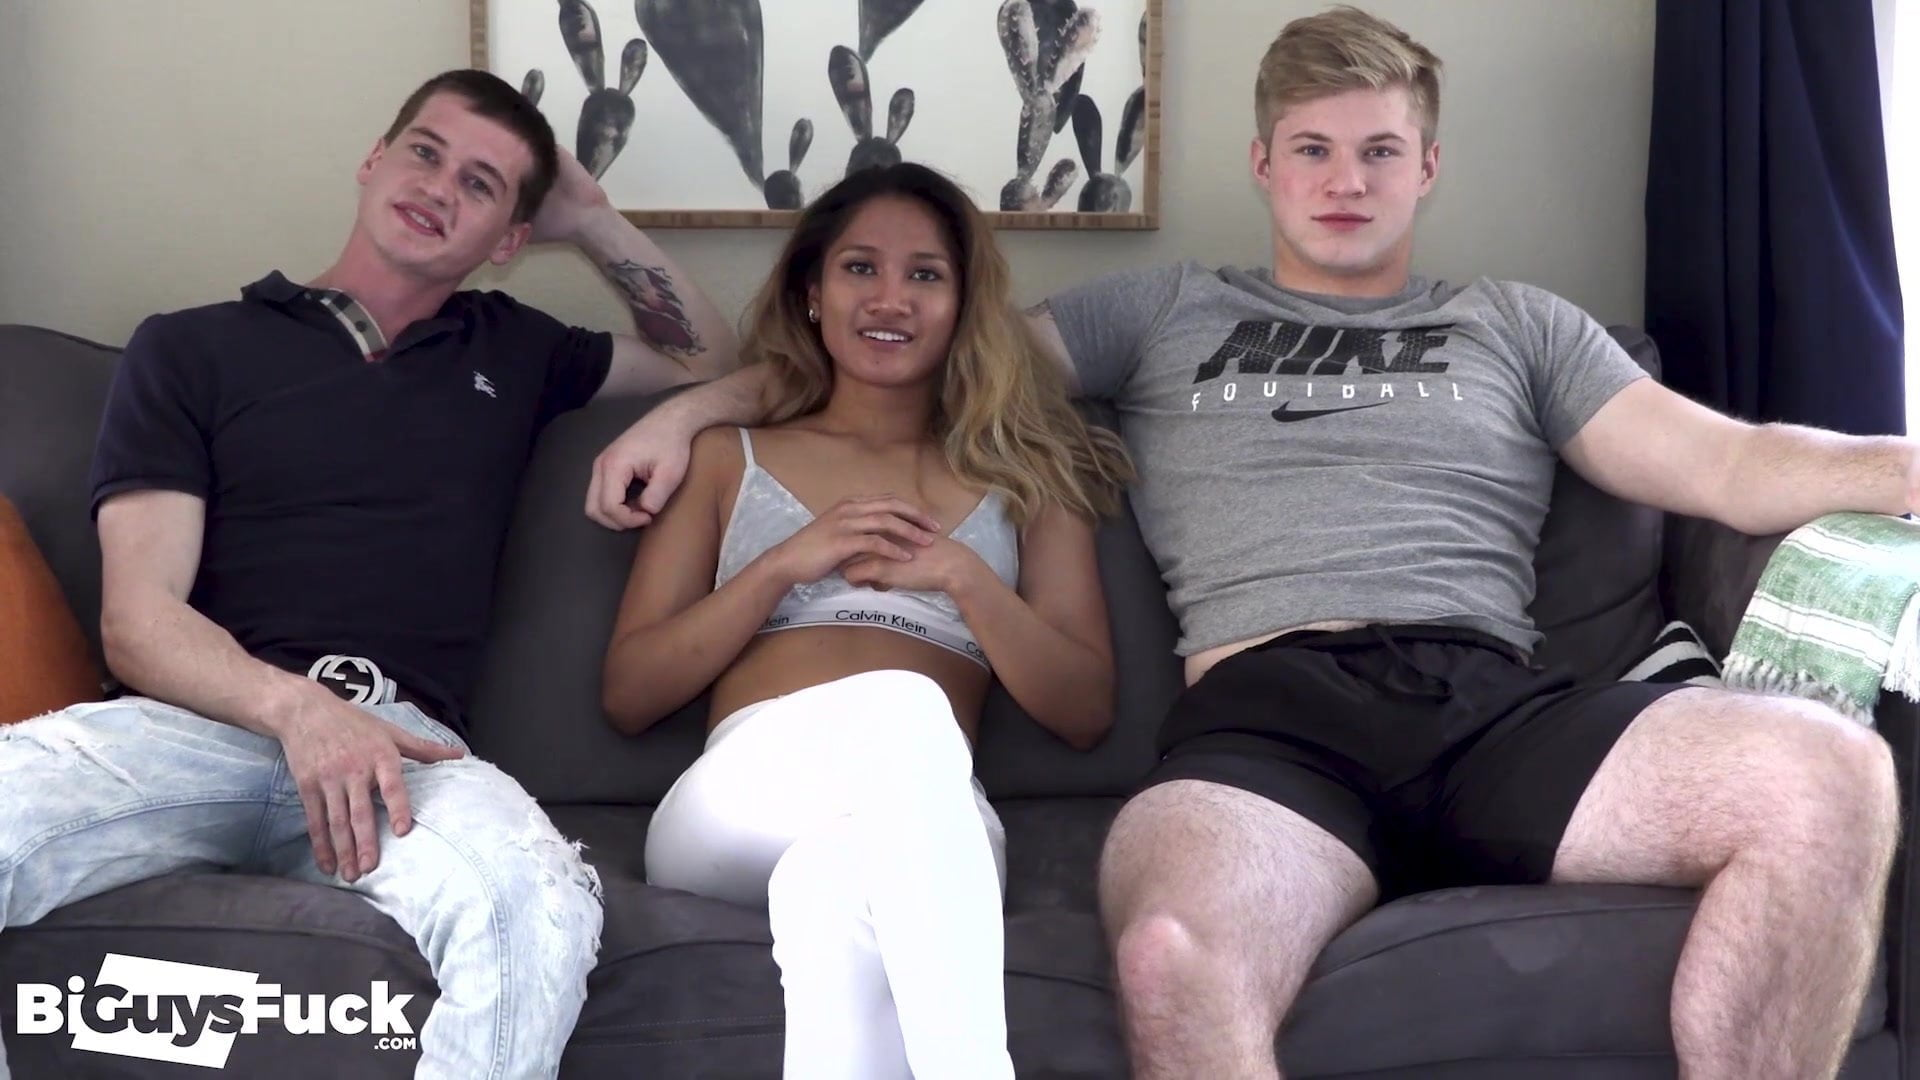 SEXY AF! ASIAN SEXY GIRL GETS 2 HOT JOCKS TO FUCK HER & EAC